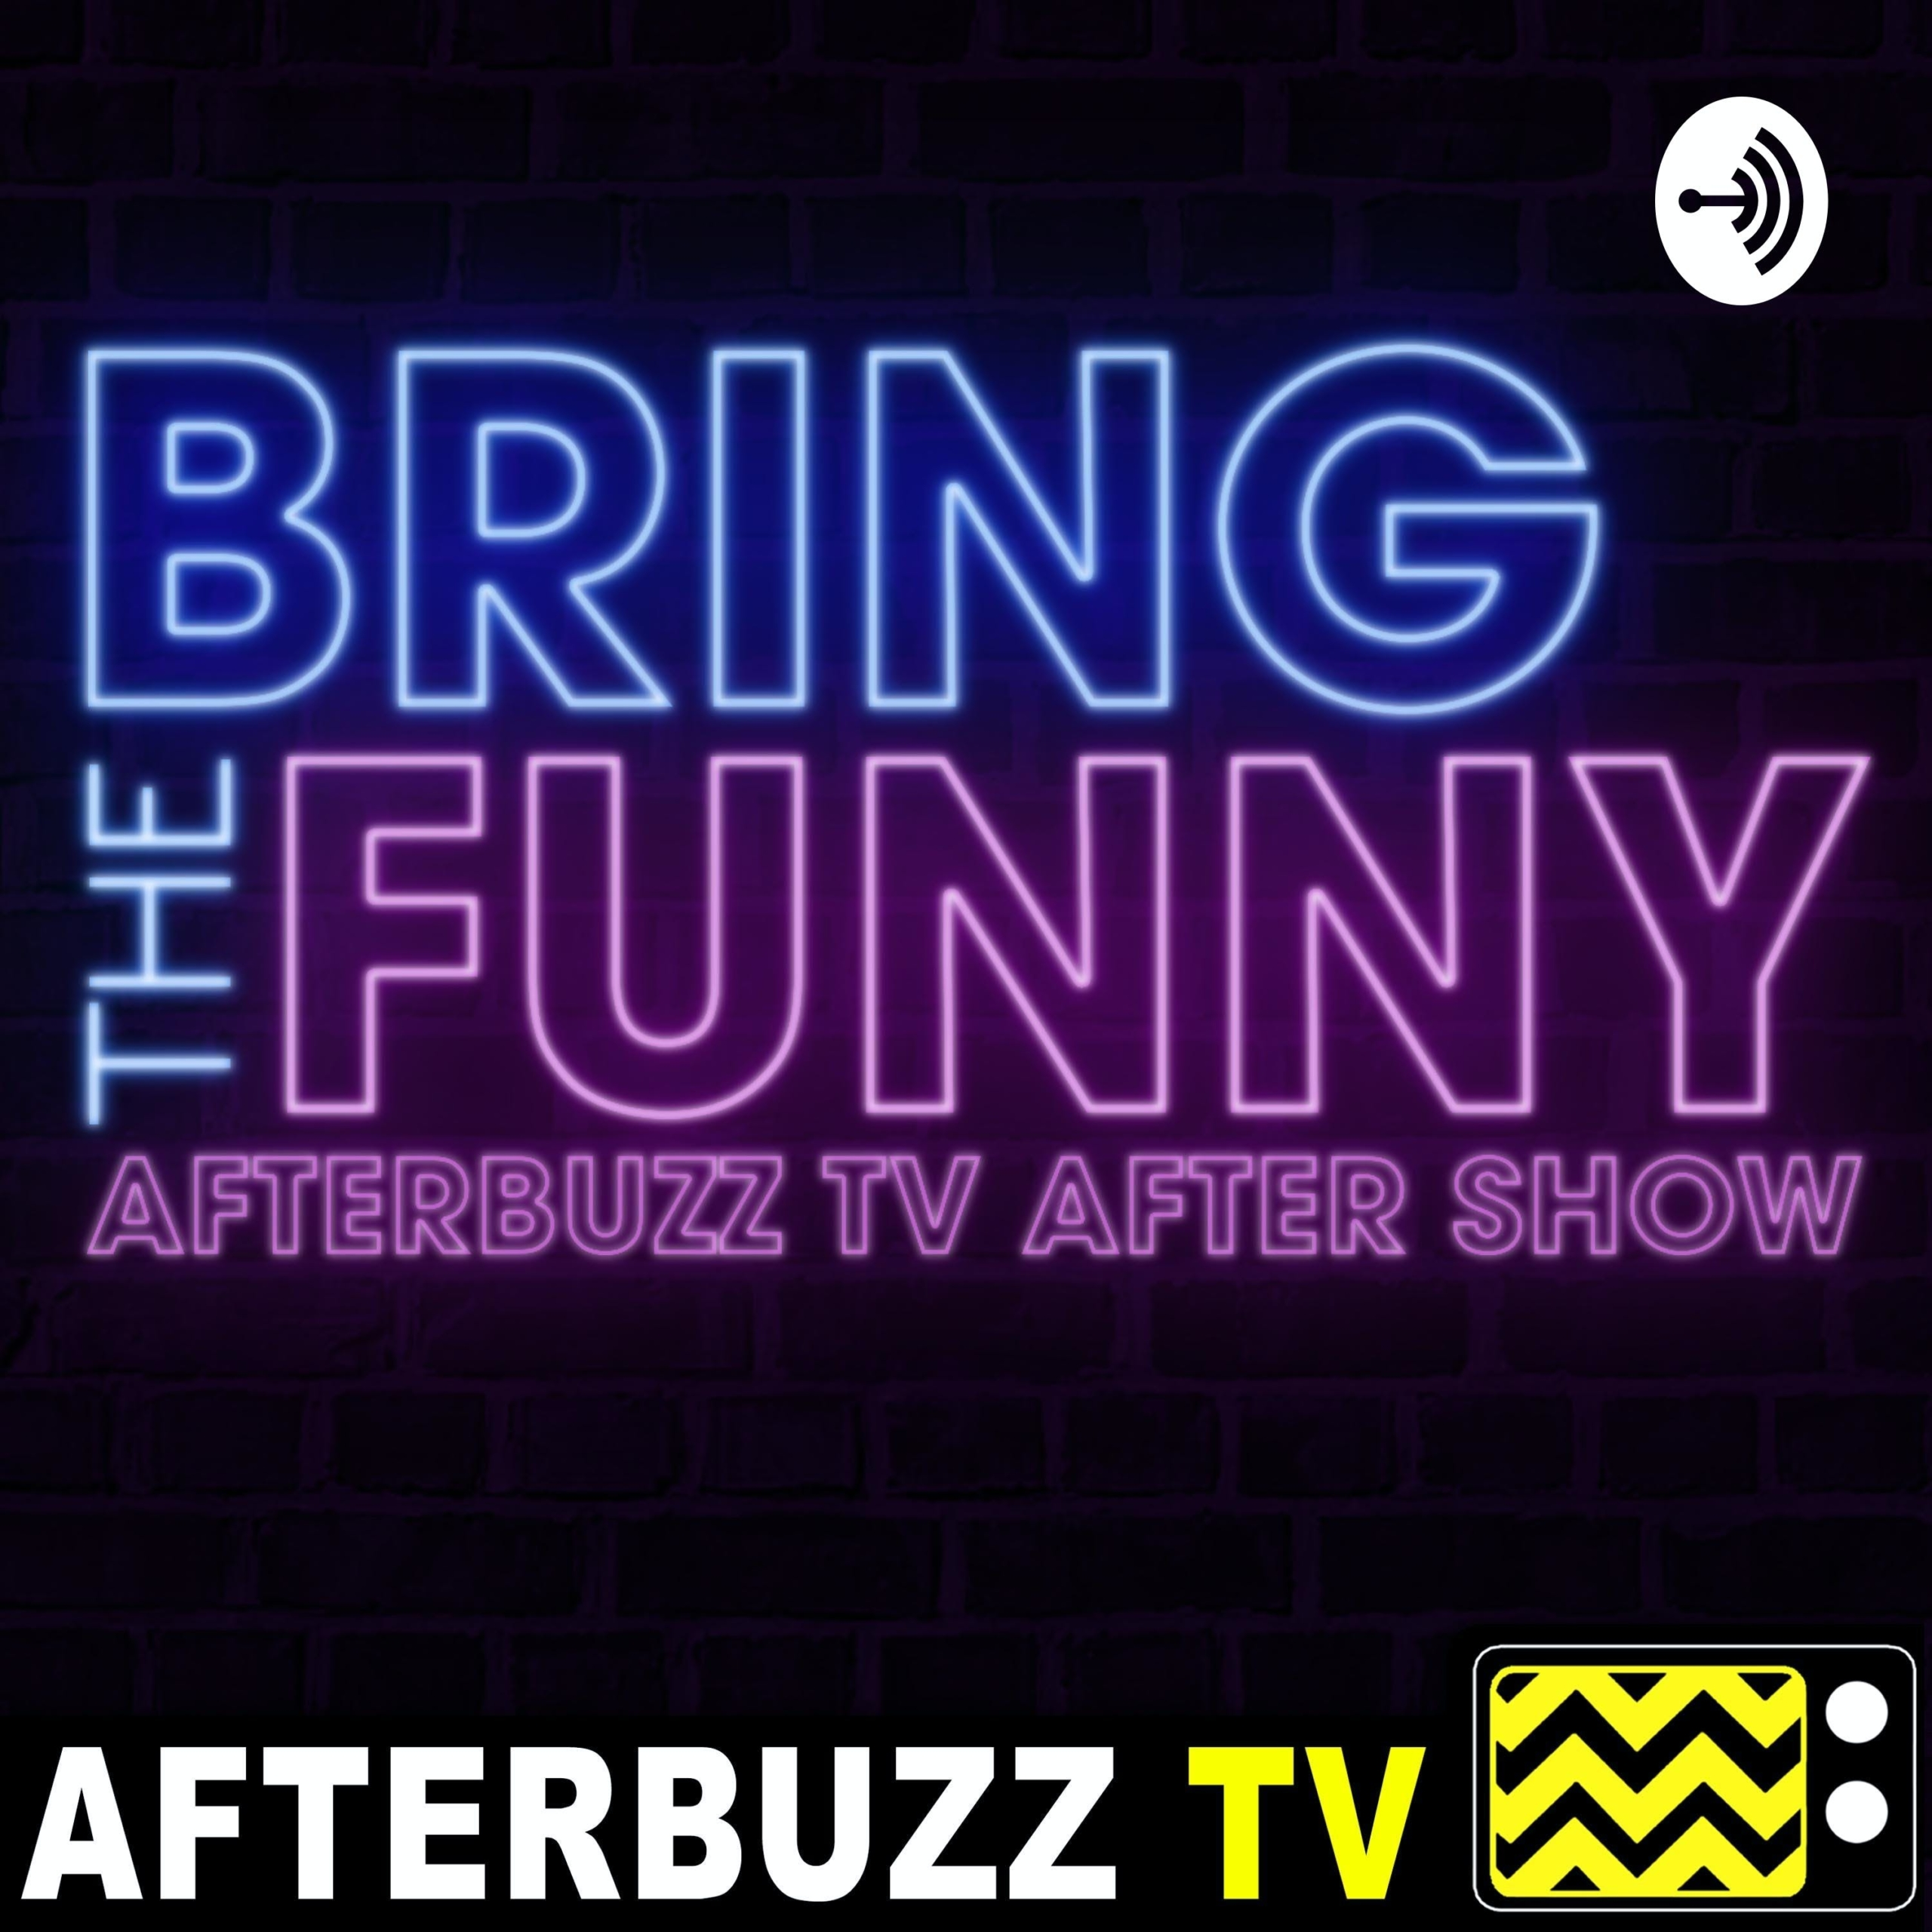 """Kids These Days guests on """"The Finale"""" Season 1 Episode 10 'Bring the Funny' Review"""